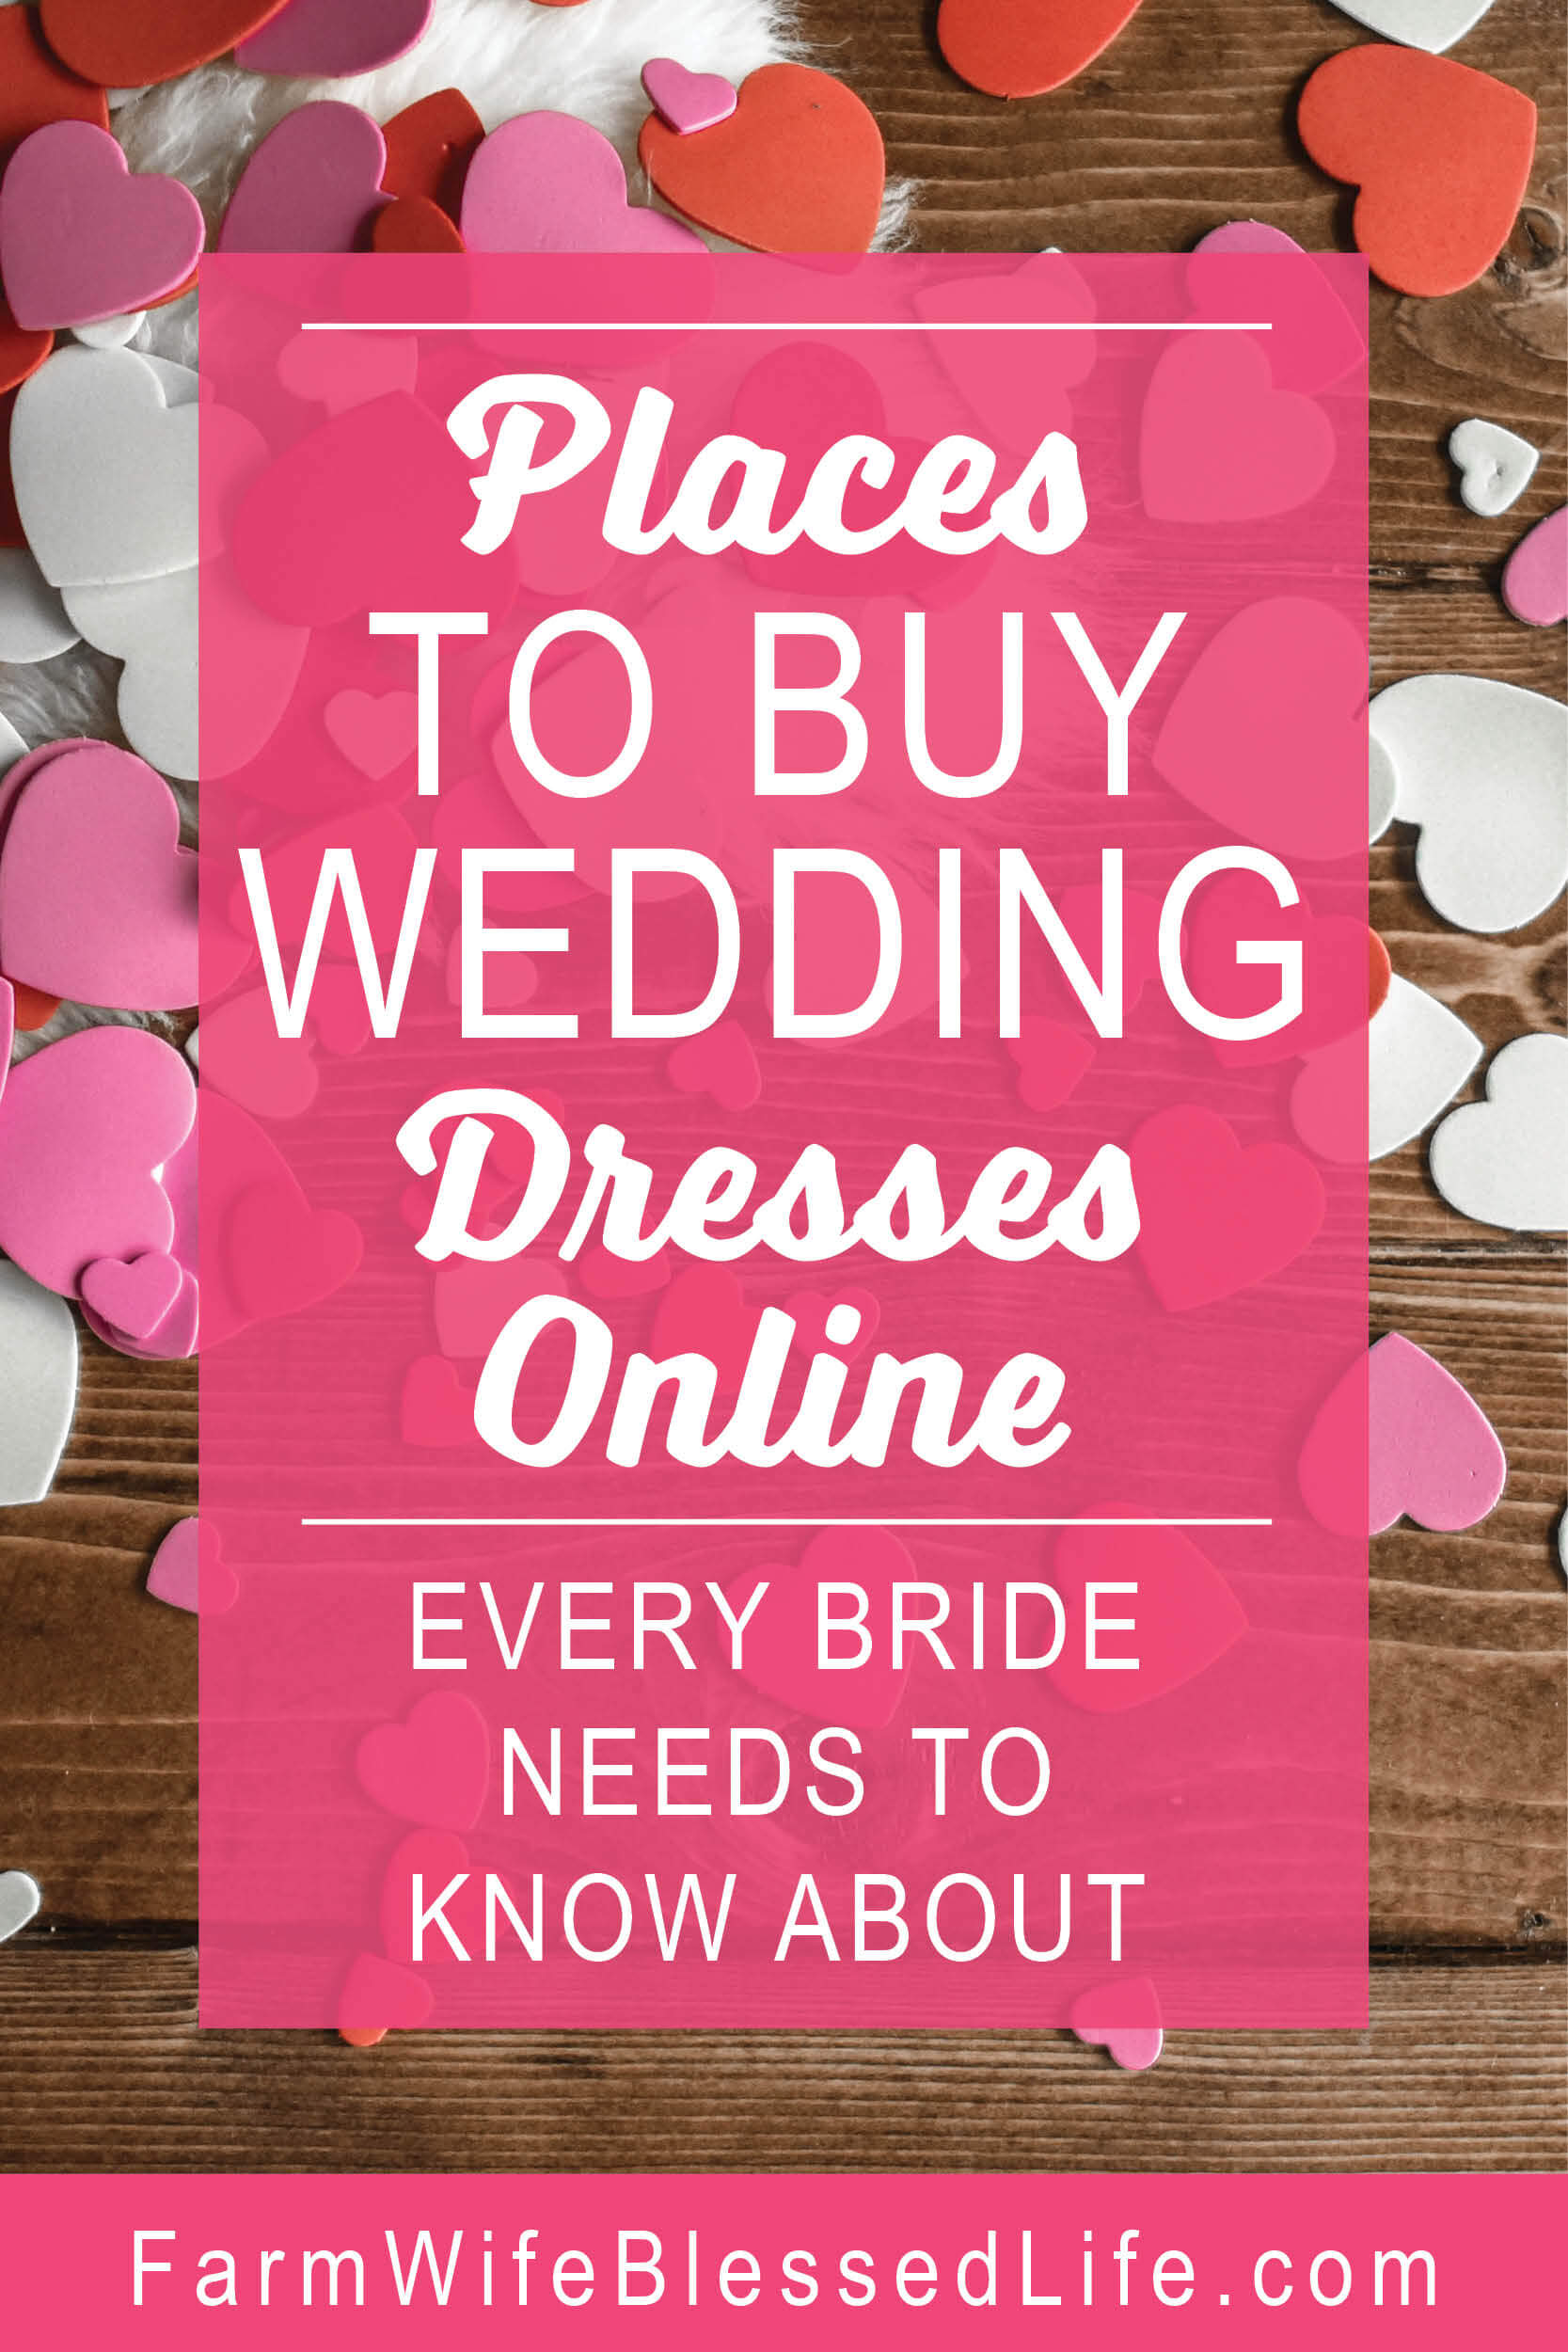 Places to Buy Wedding Dresses Online Every Bride Needs to Know About